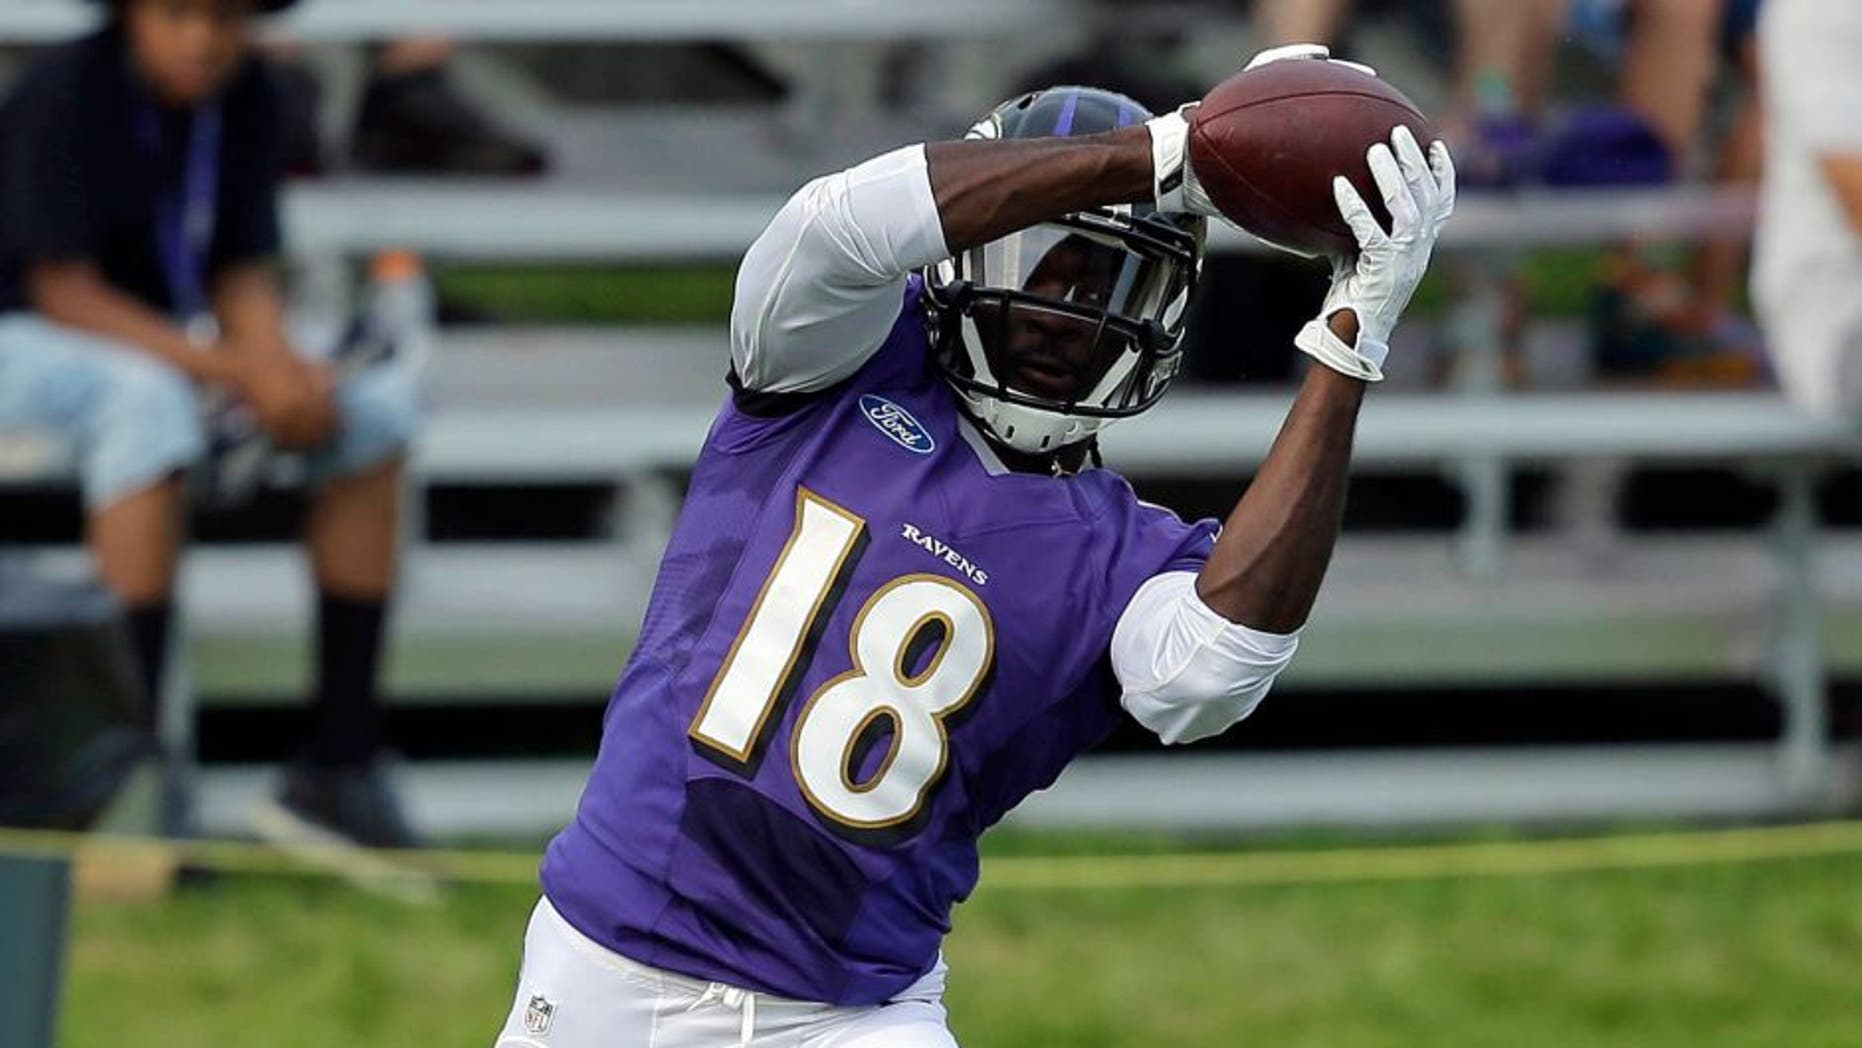 Baltimore Ravens wide receiver Breshad Perriman makes a catch in front of spectators at the team's first day of NFL football training camp, Thursday, July 30, 2015, in Owings Mills, Md. (AP Photo/Patrick Semansky)